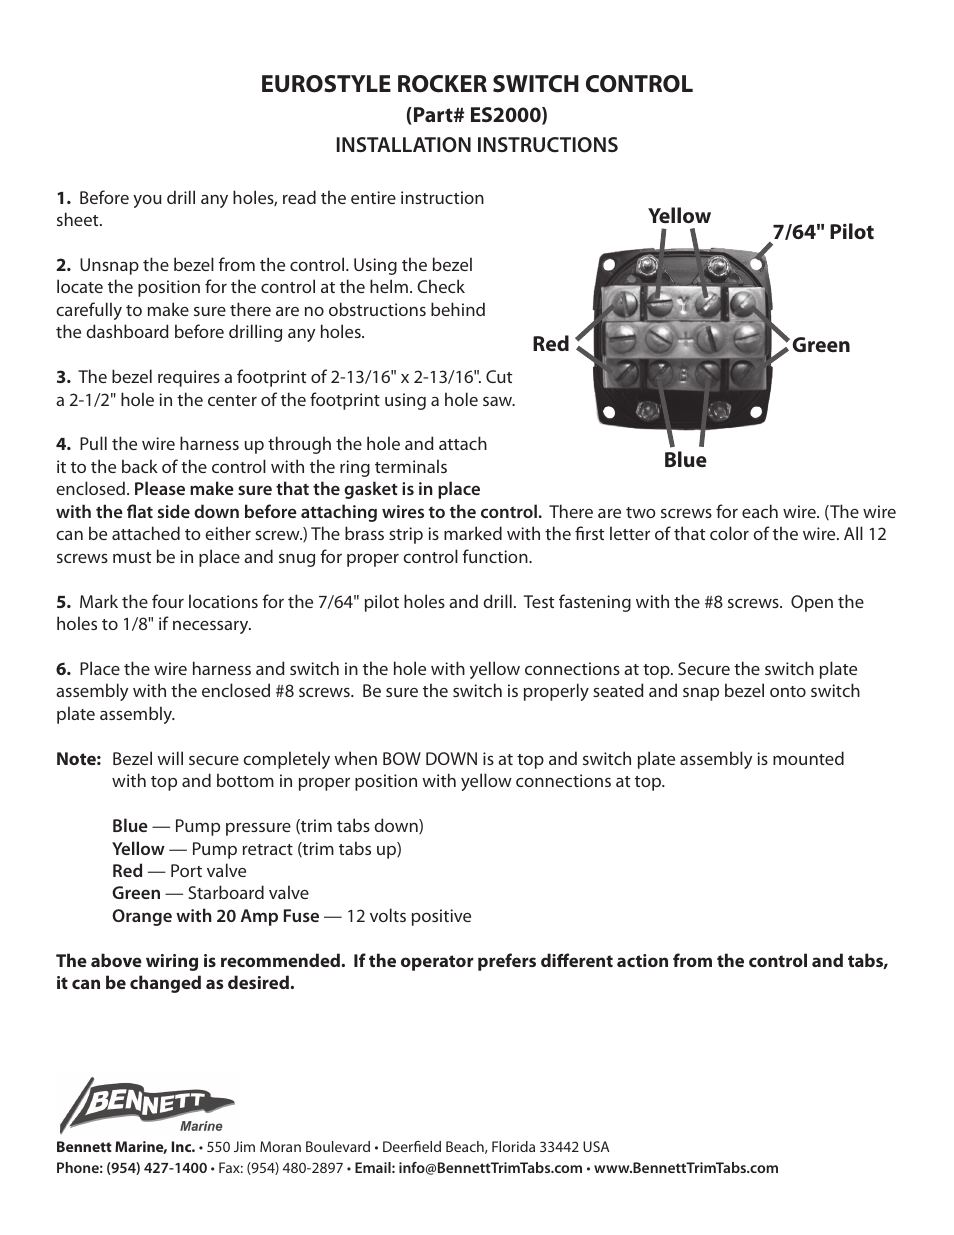 Bennett Marine ES2000 Euro-Style Rocker Switch Control User Manual | 1 page